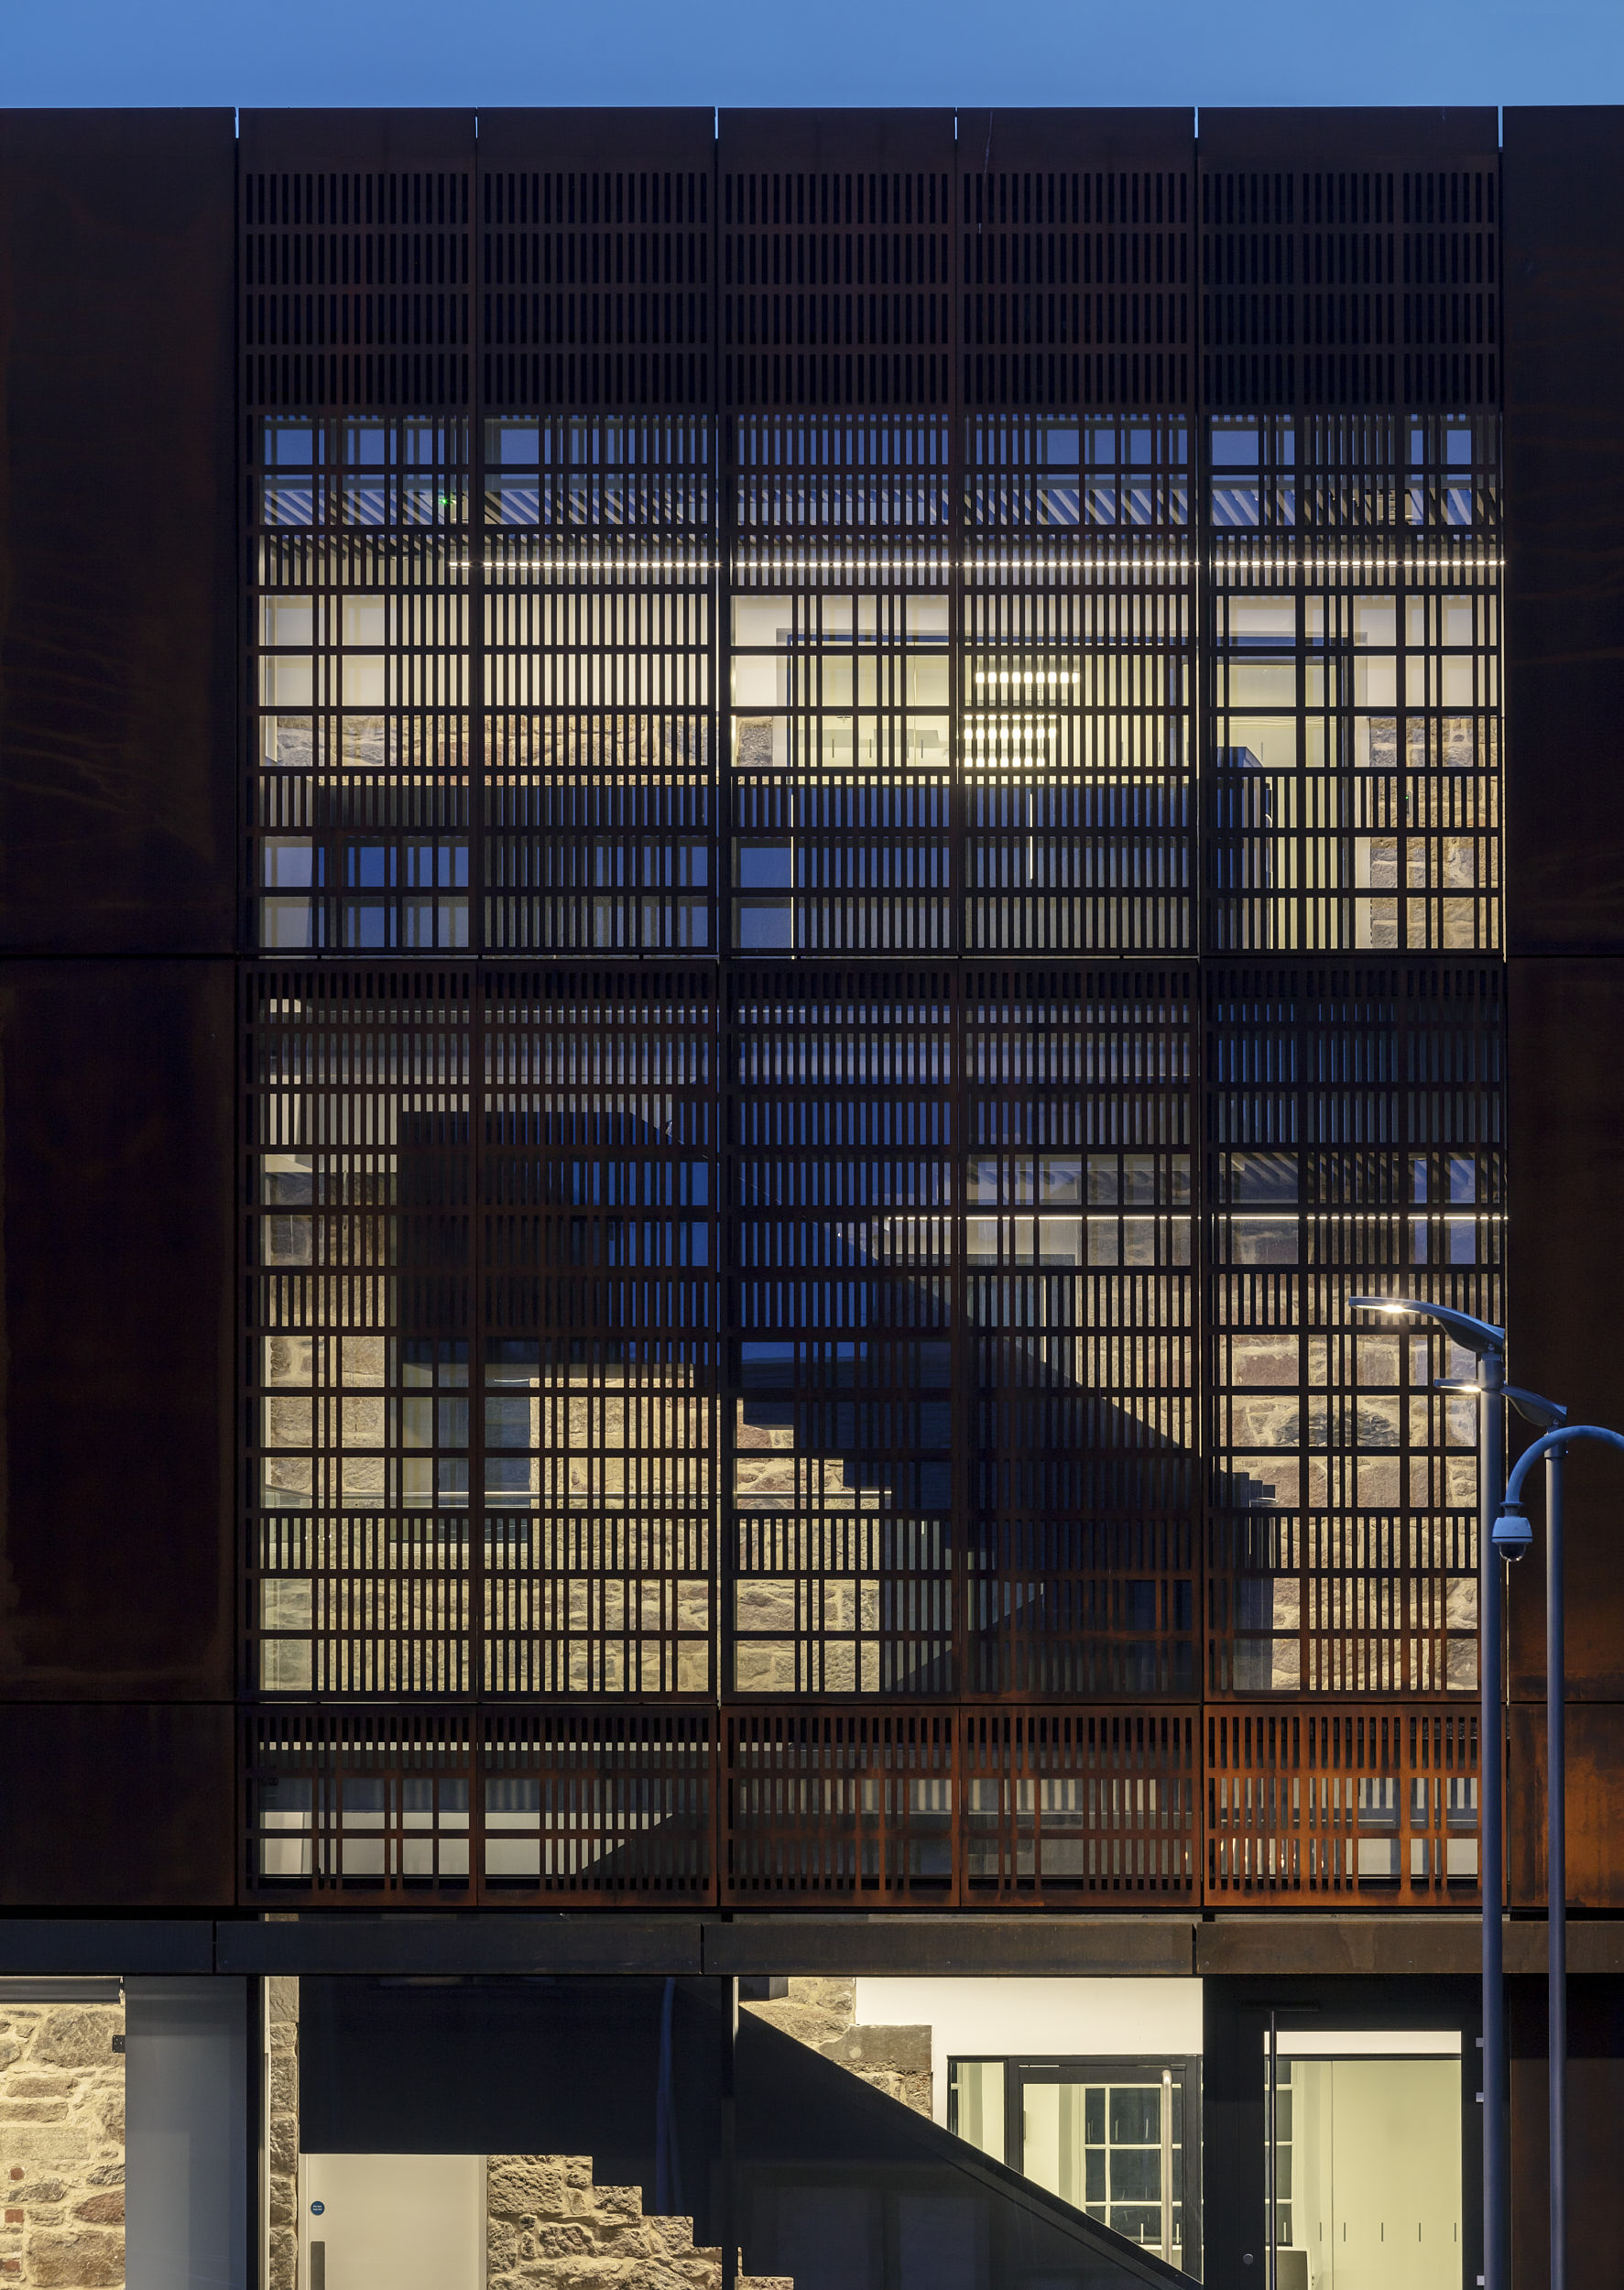 Exterior architectural night photograph.